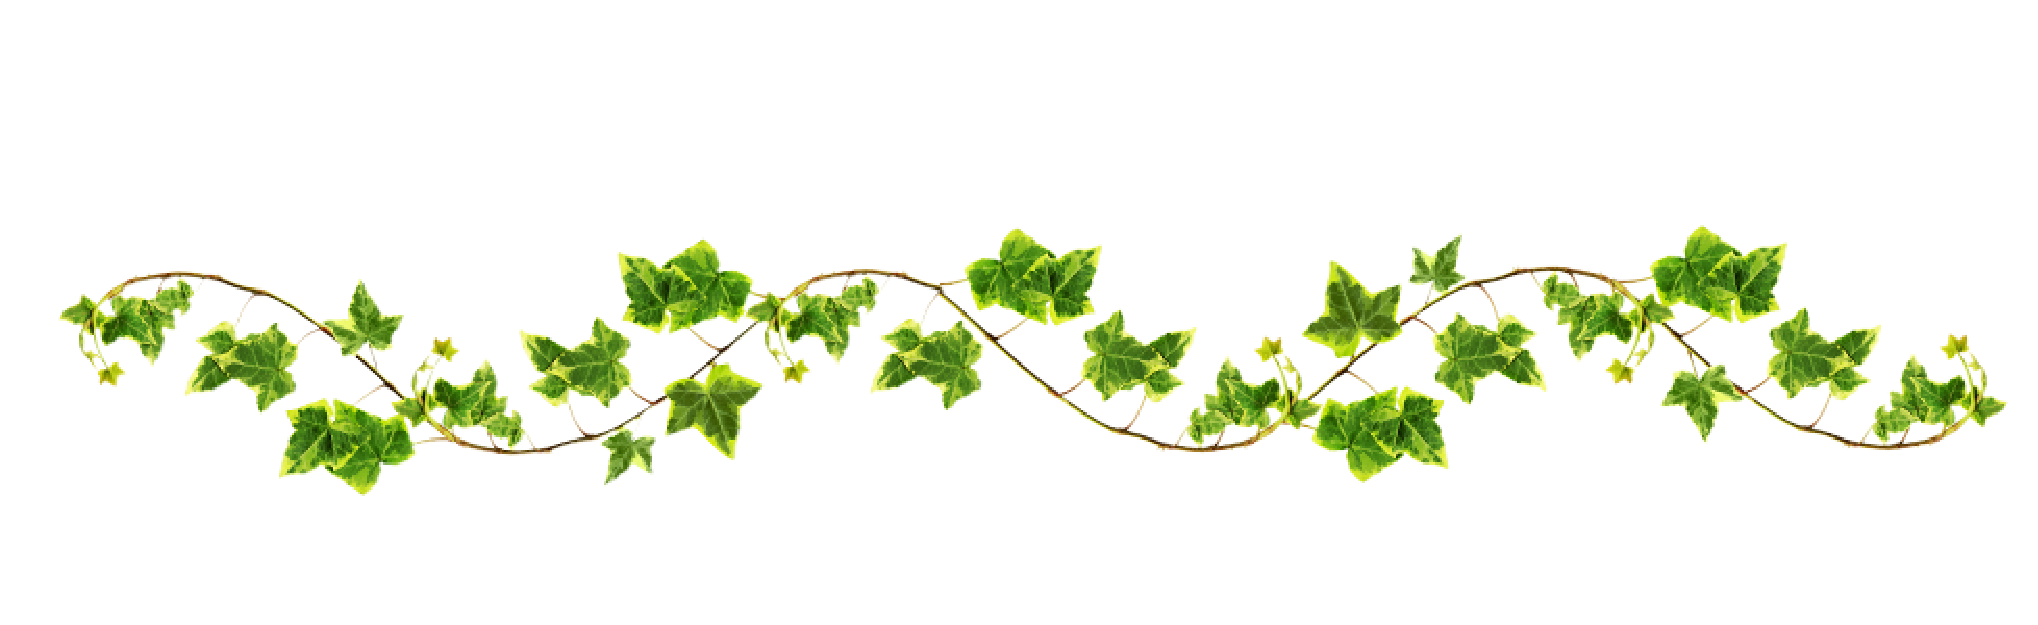 Flower vine png. Vines transparent pictures free